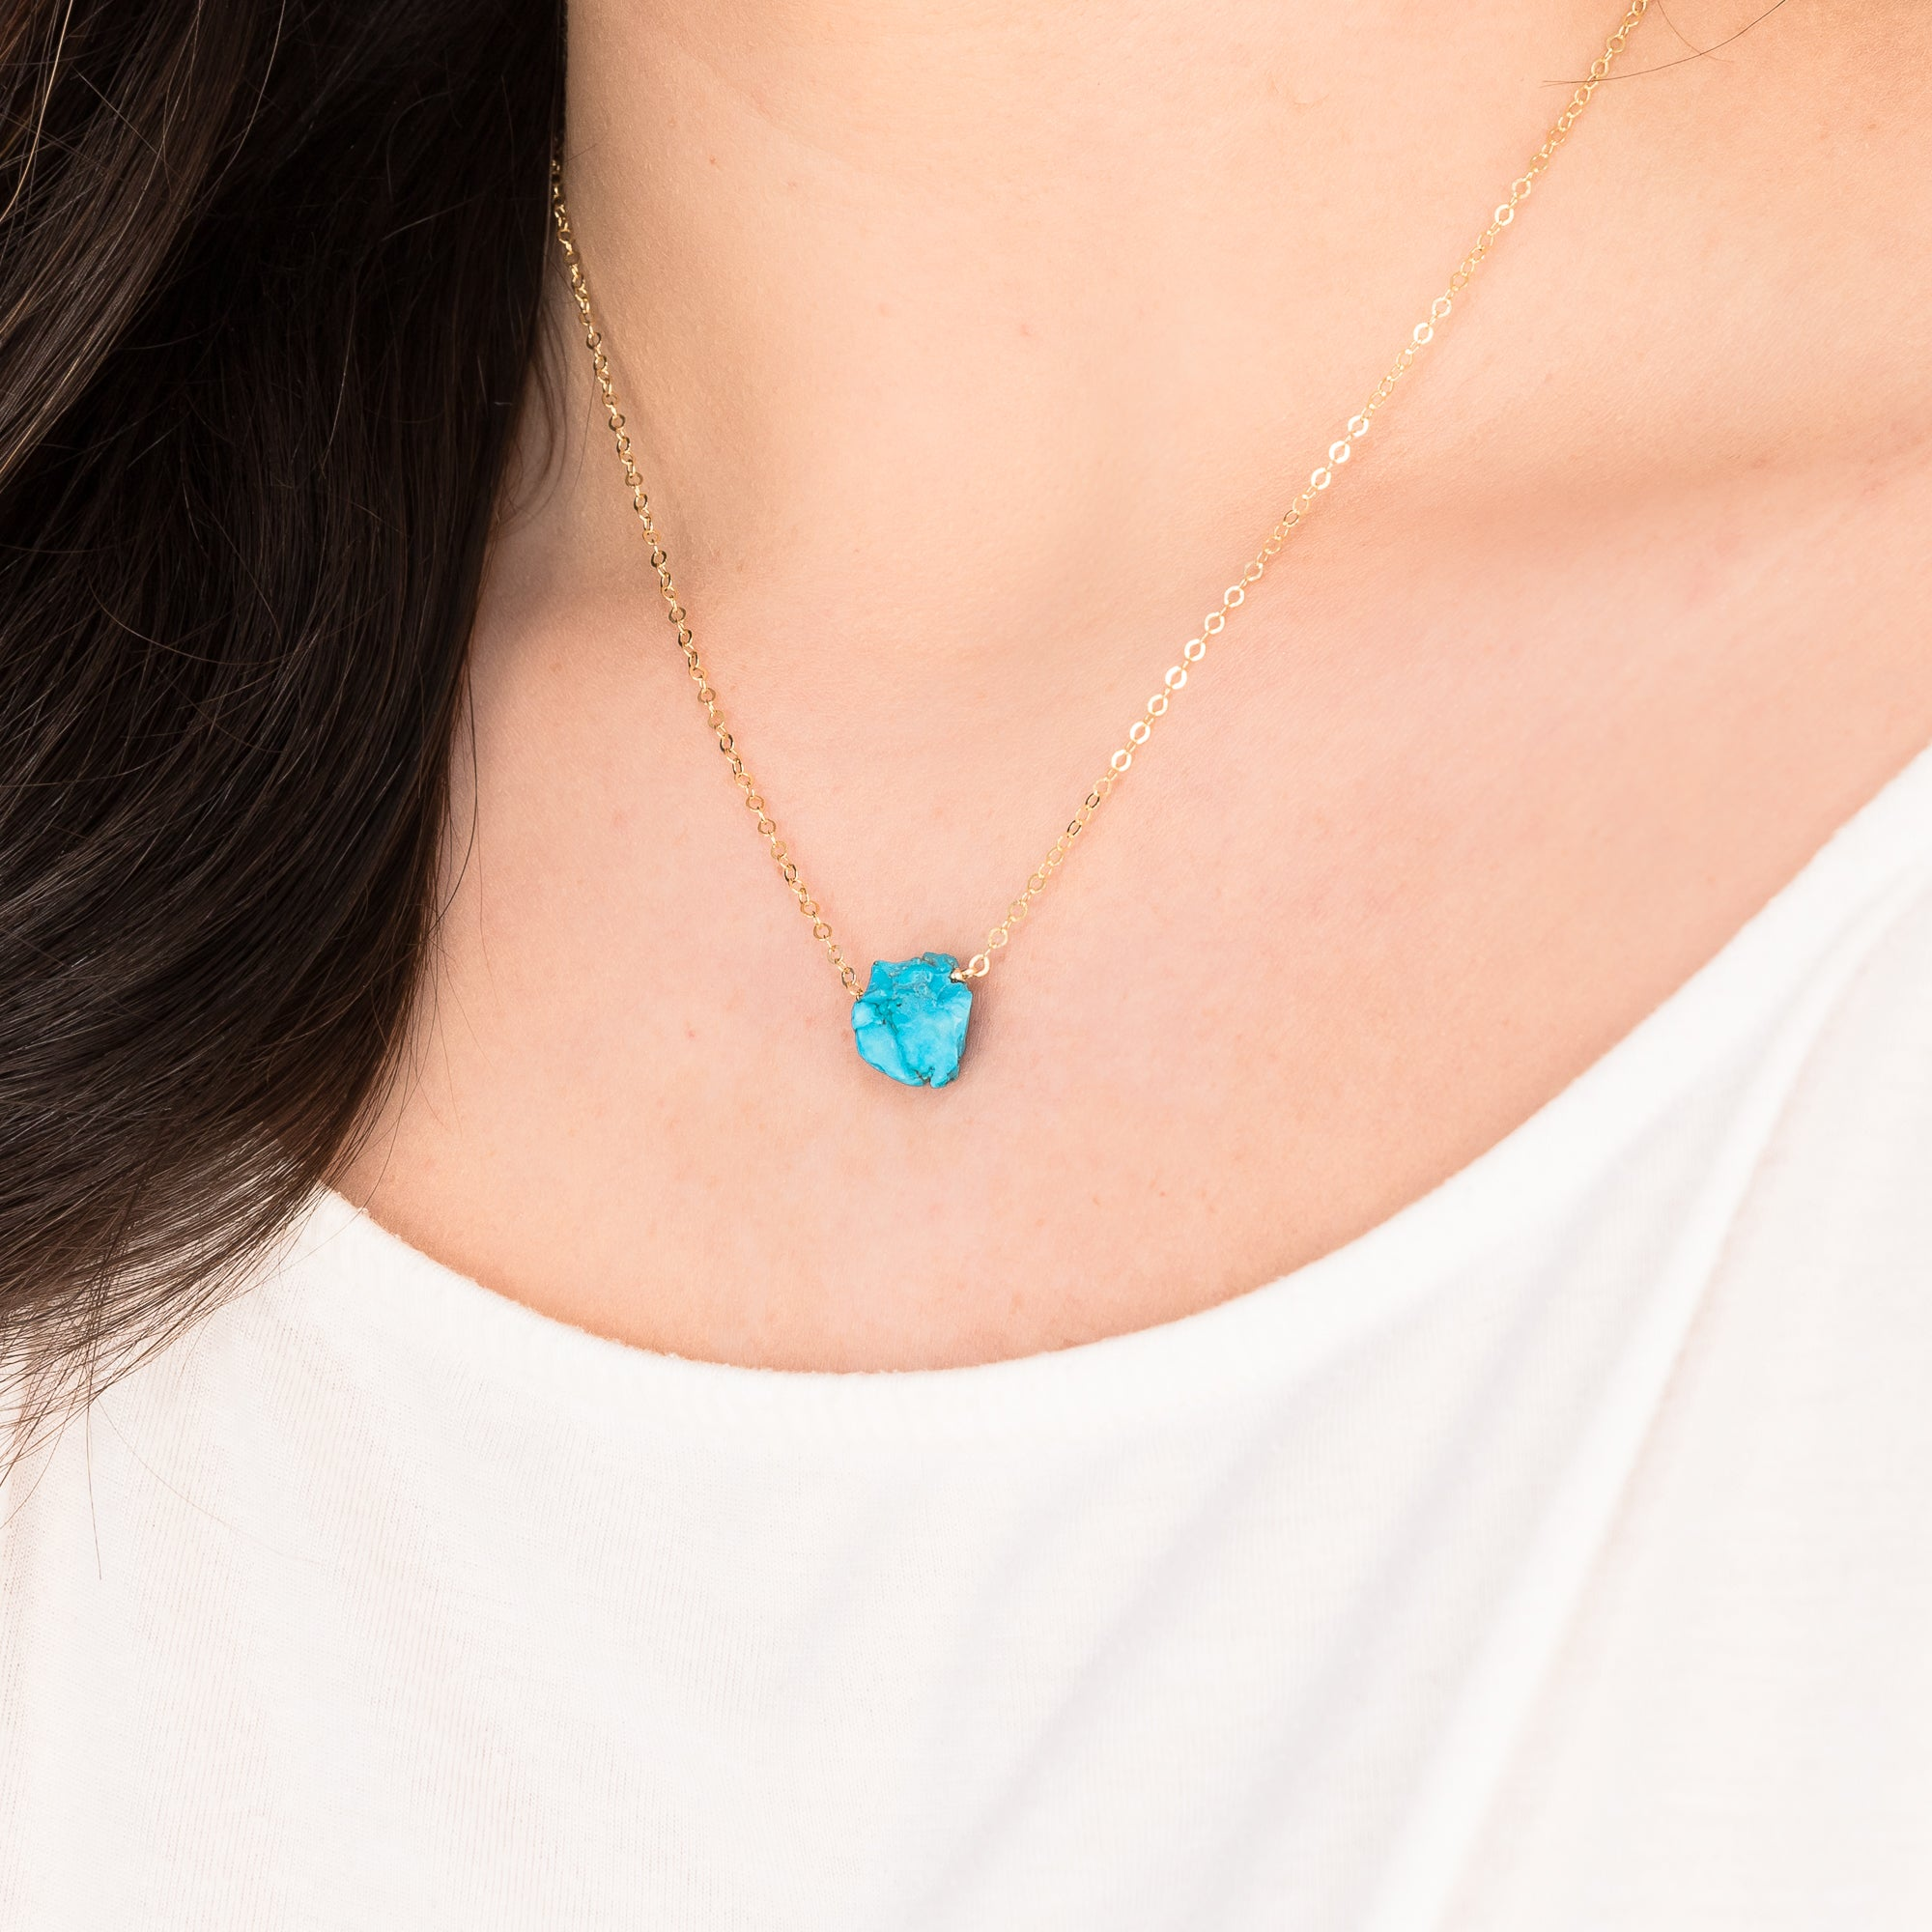 Rough Blue Turquoise Gemstone Necklace